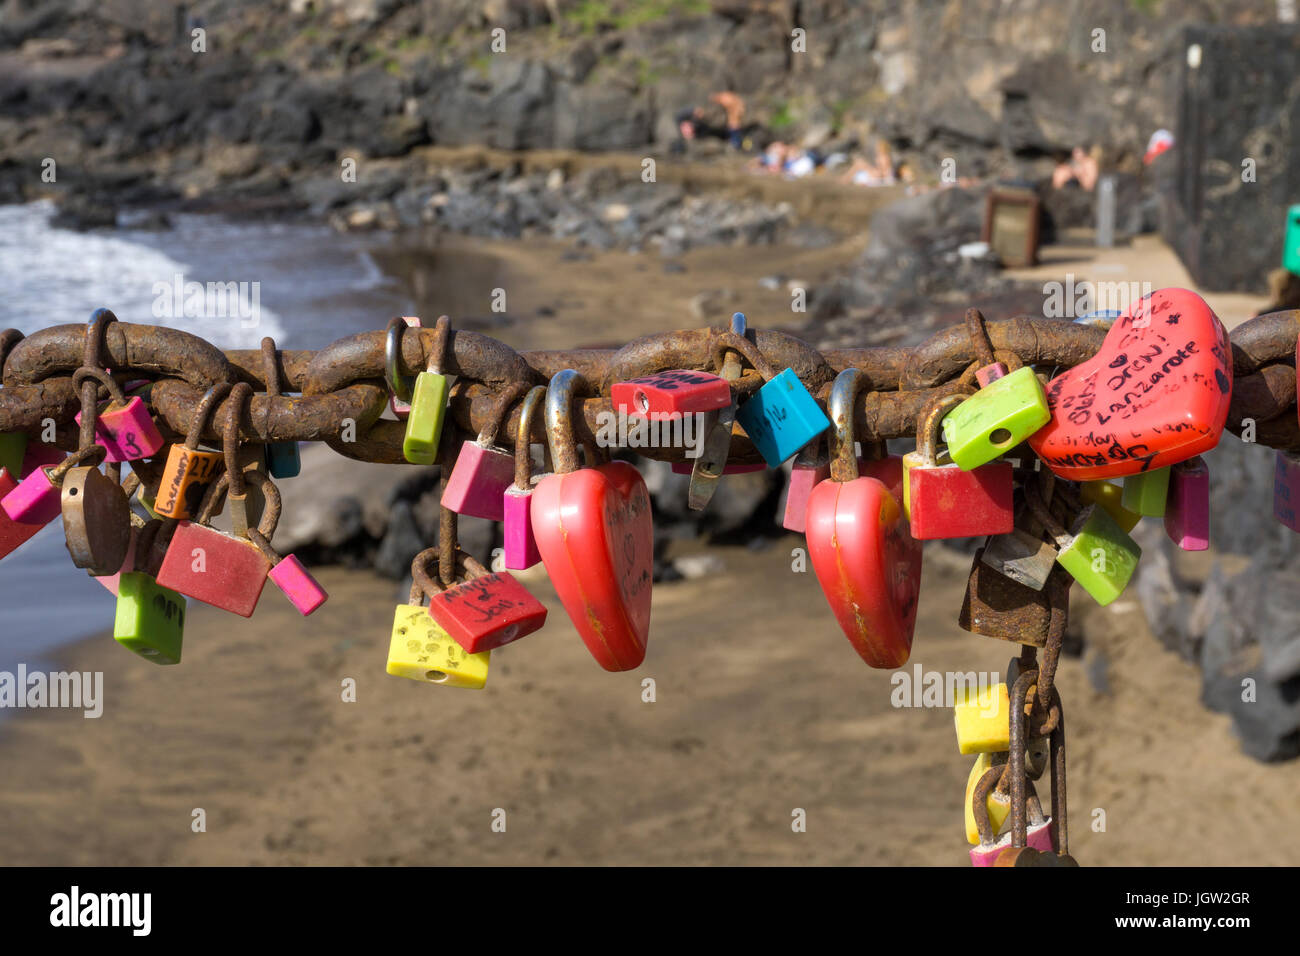 Love lockers hanging on chain at Playa Grande, large beach at Puerto del Carmen, Lanzarote island, Canary islands, - Stock Image